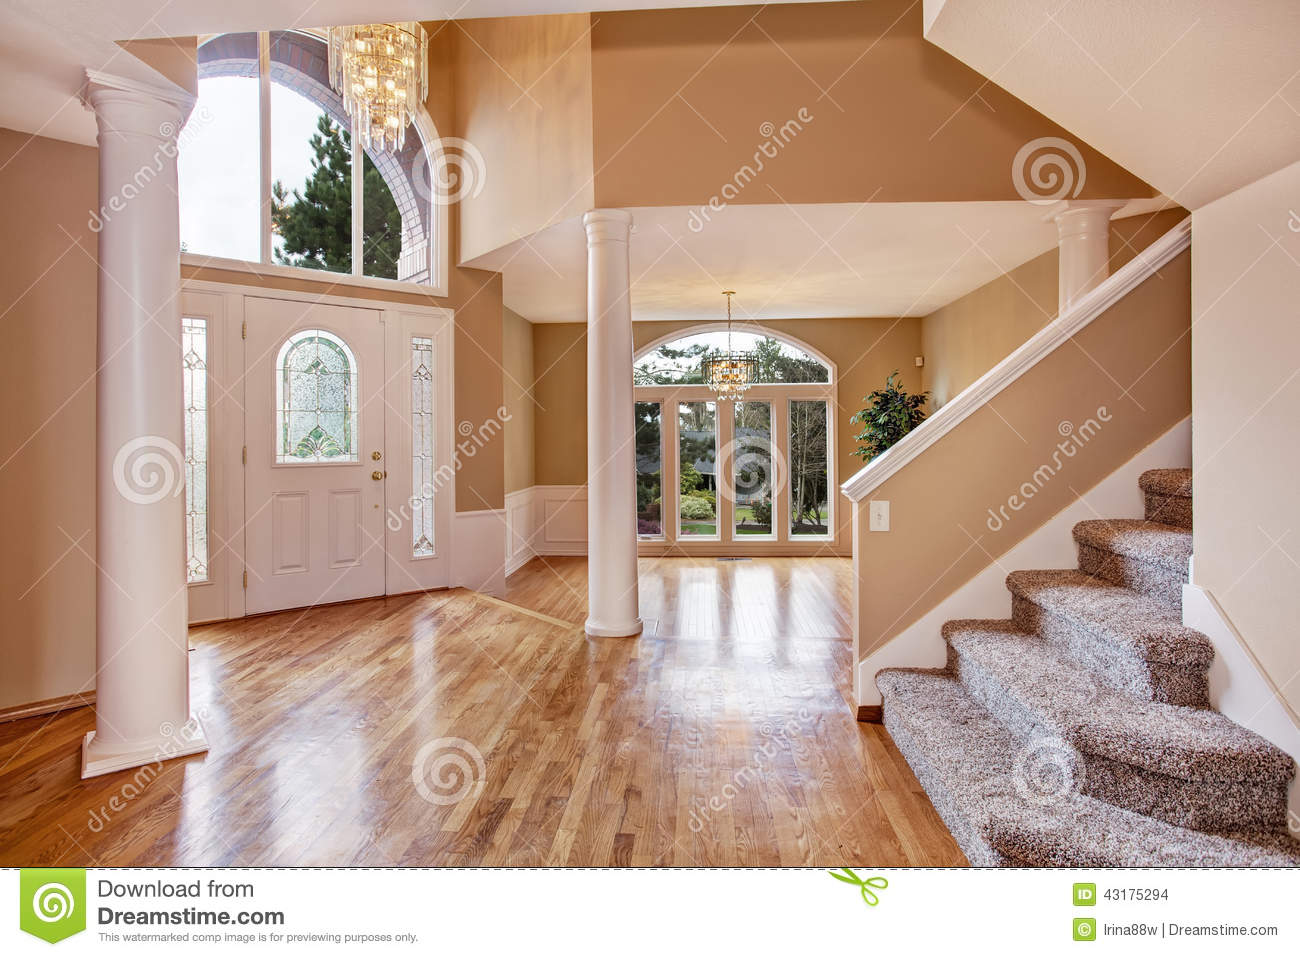 House Plans Foyer Entrance : Gorgeous foyer in luxury house stock photo image of